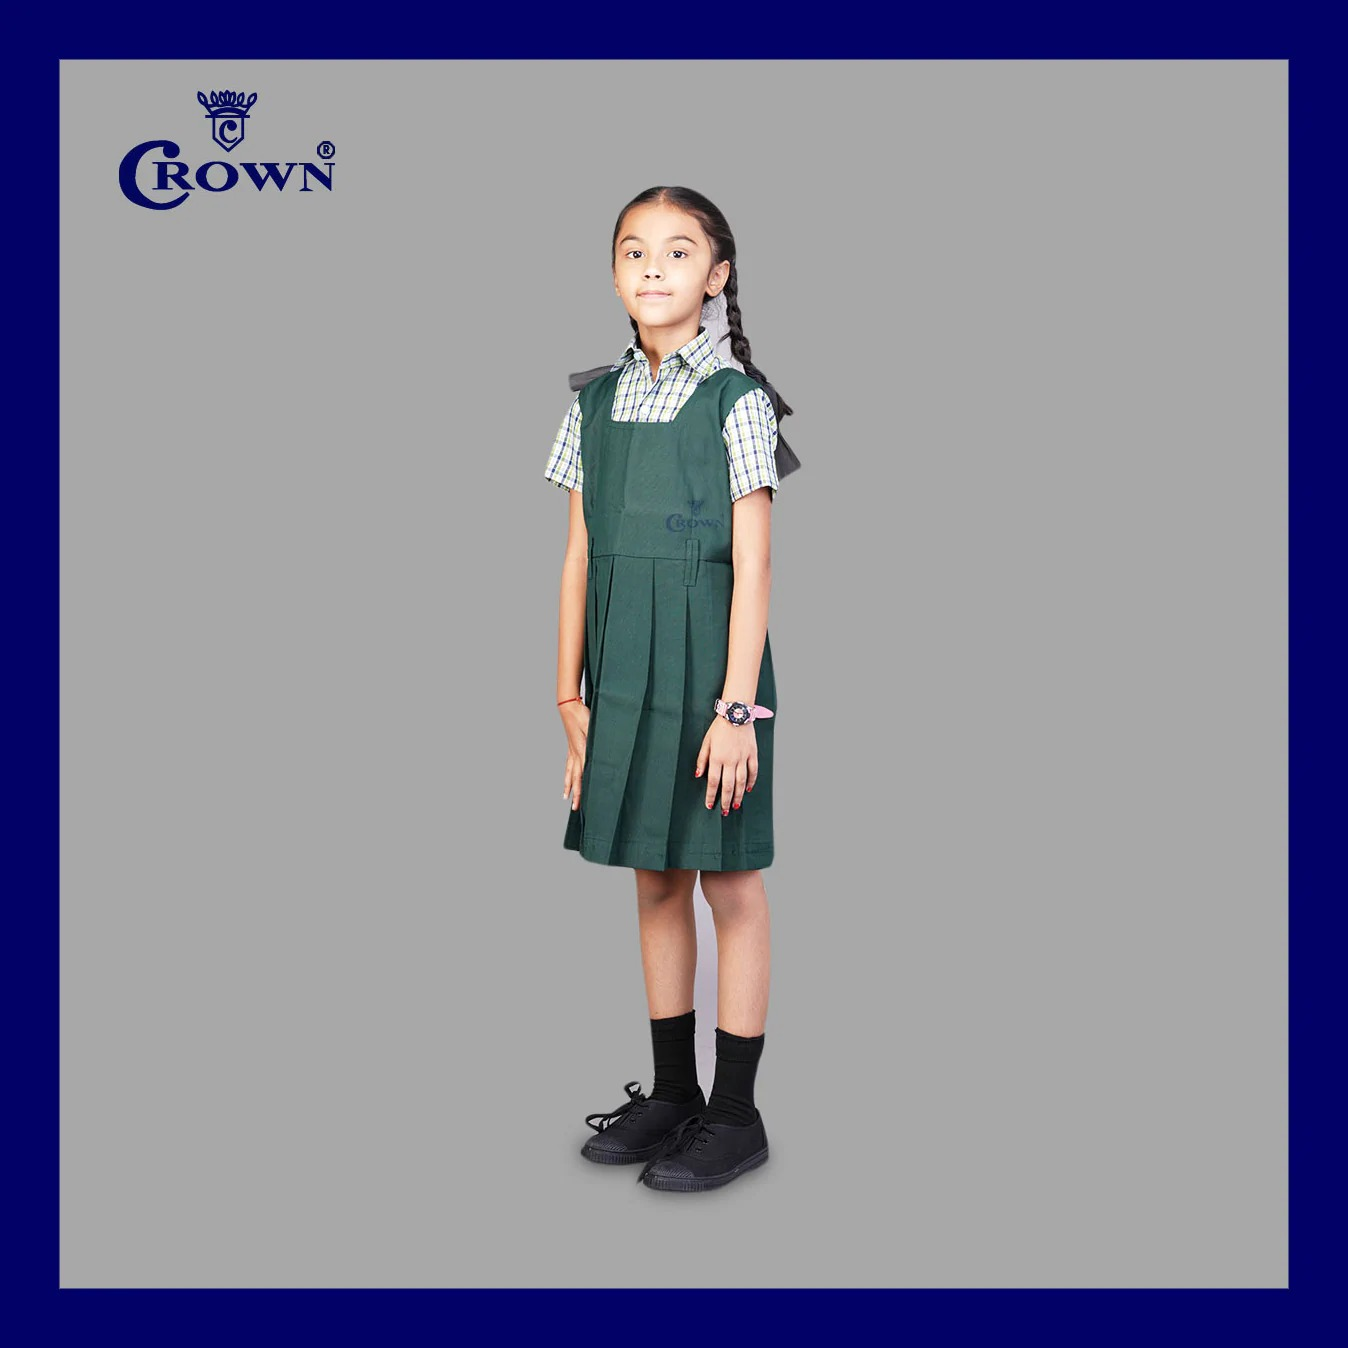 Crown TN Govt 1 - 5thStd Bottle Green Colour Pinafore (6-7 Years)